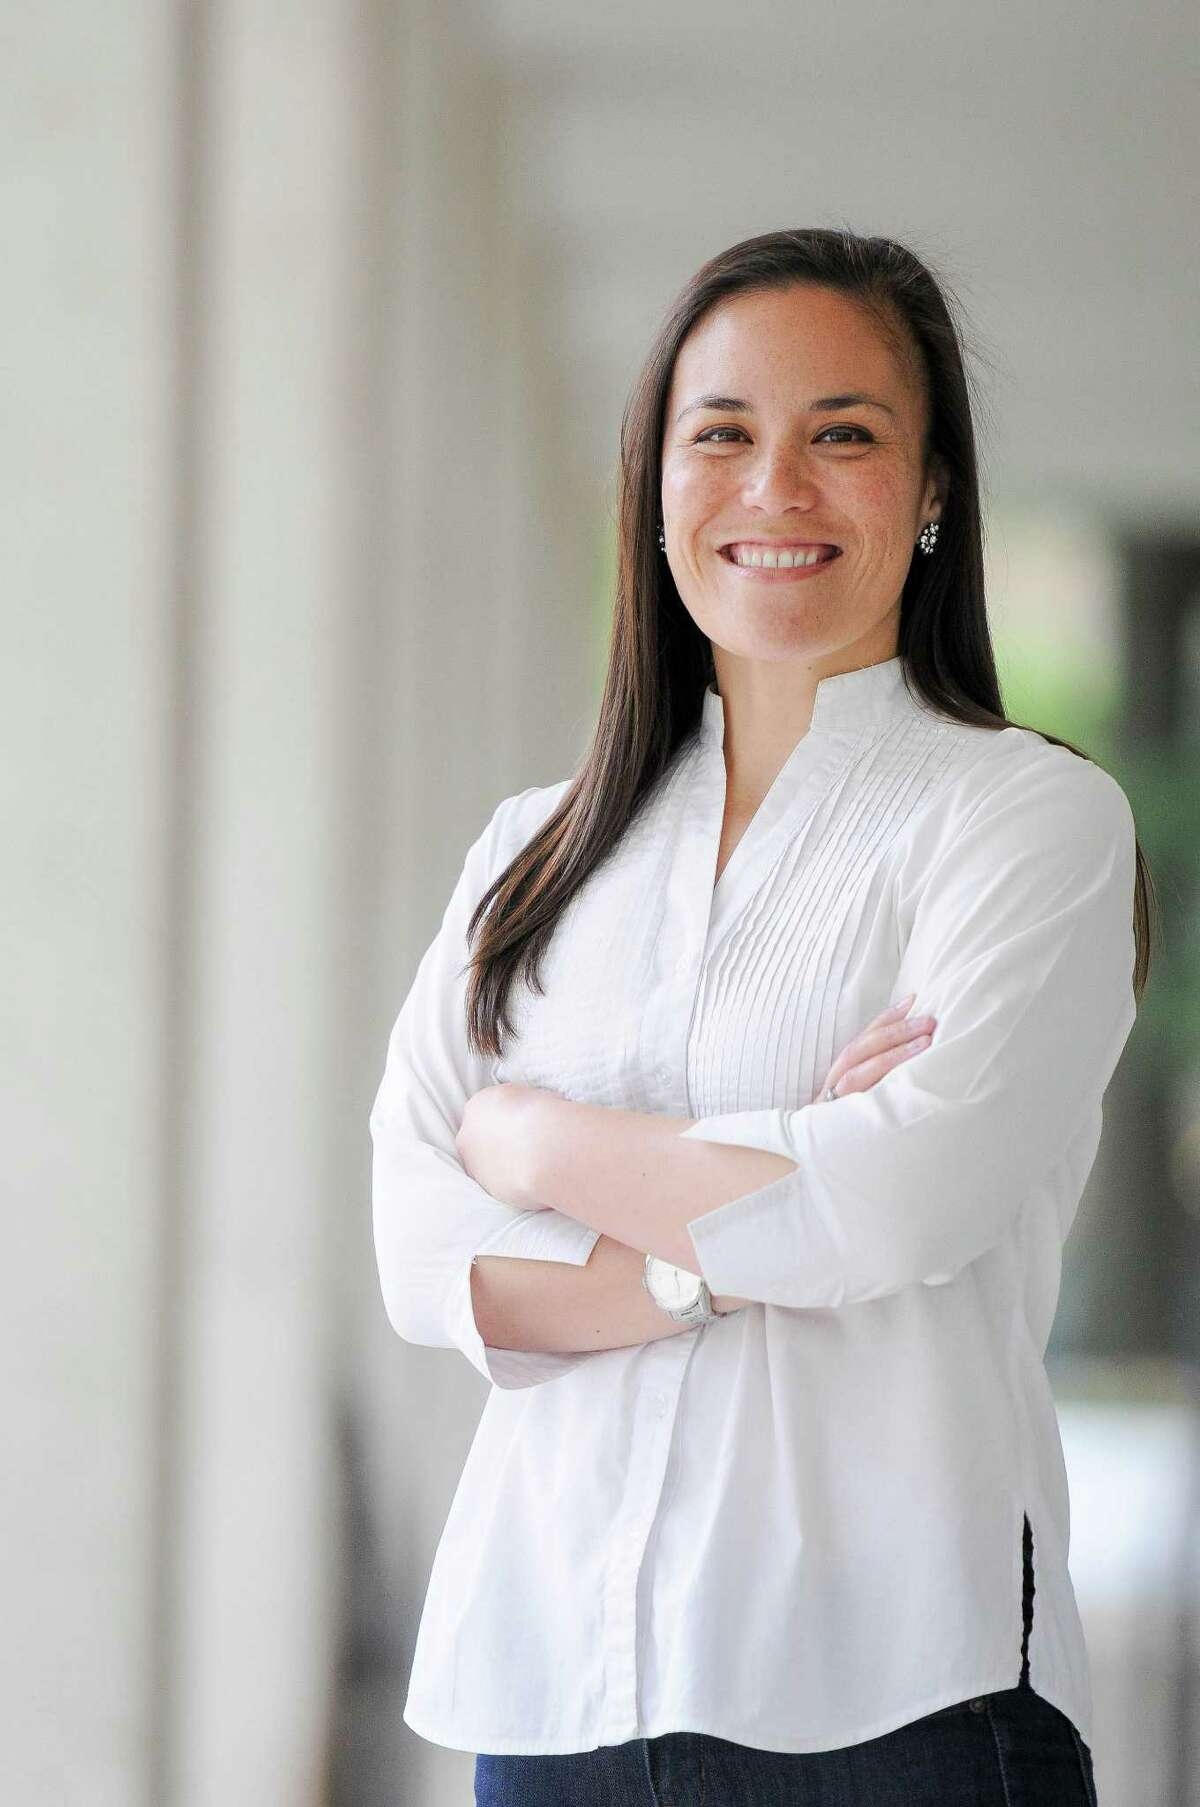 U.S. Air Force veteran and national security expert Gina Ortiz Jones, who is from San Antonio , announced today that she is challenging Congressman Will Hurd for Texas' 23rd Congressional District. She is a Democrat.